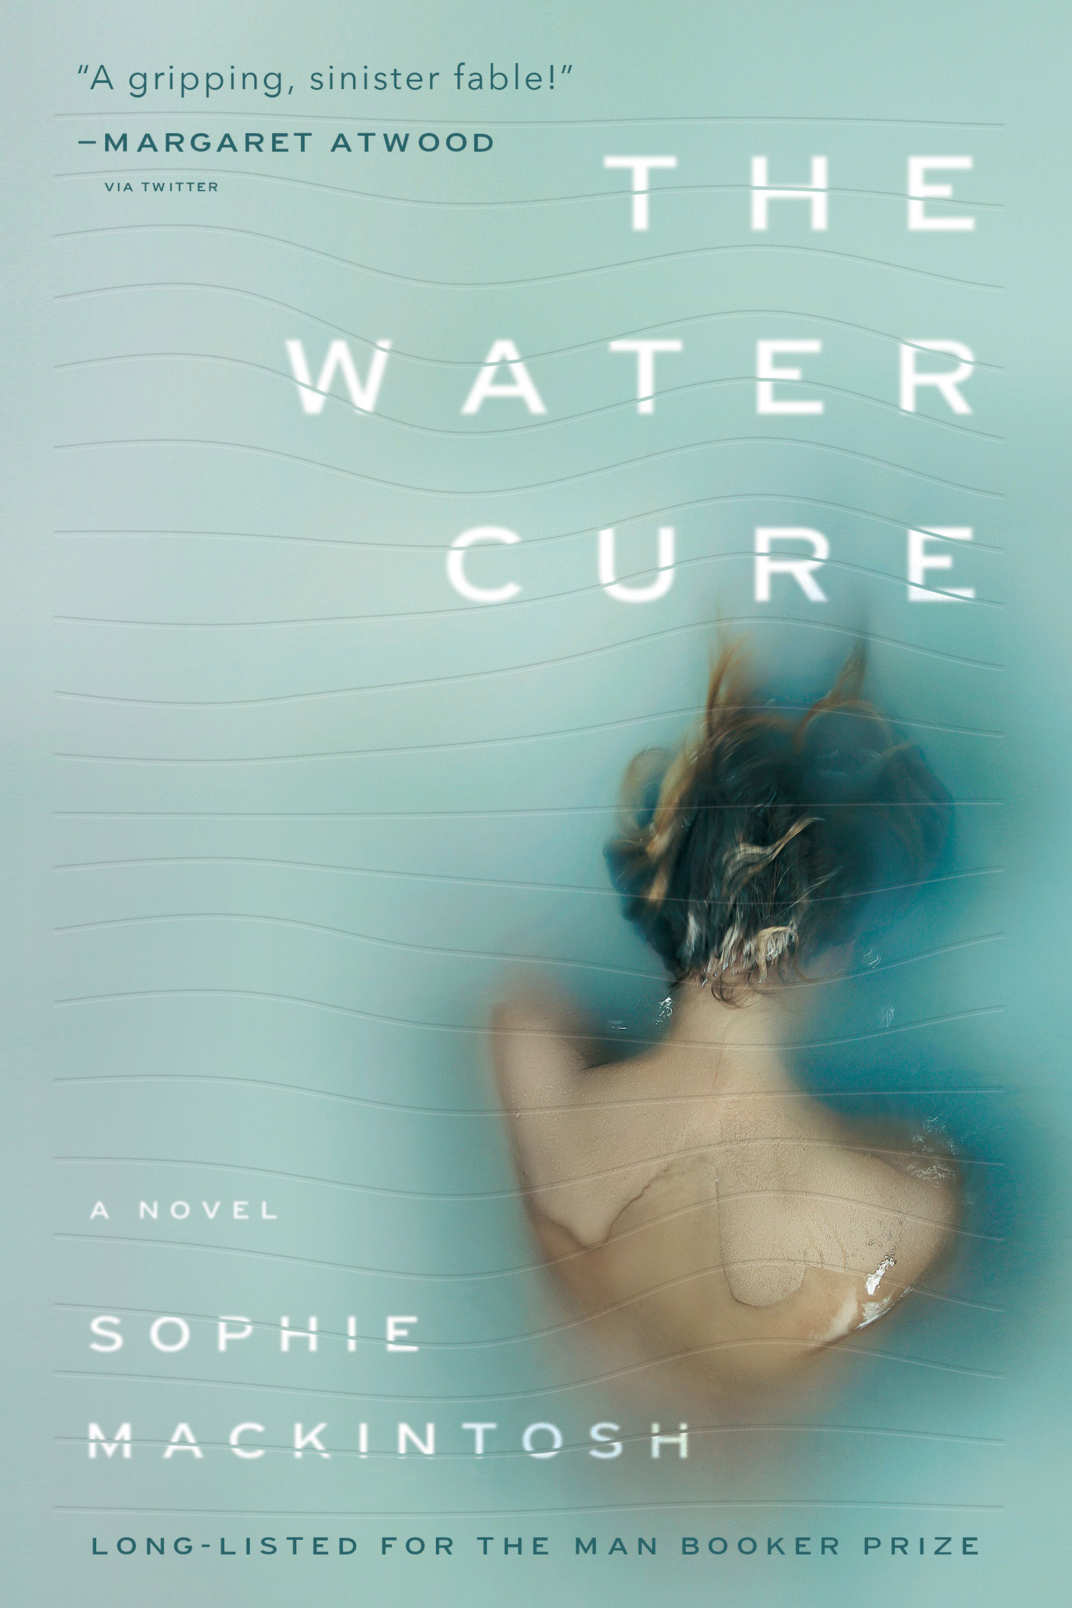 The Water Cure, by Sophie Mackintosh (Doubleday, Jan. 8)